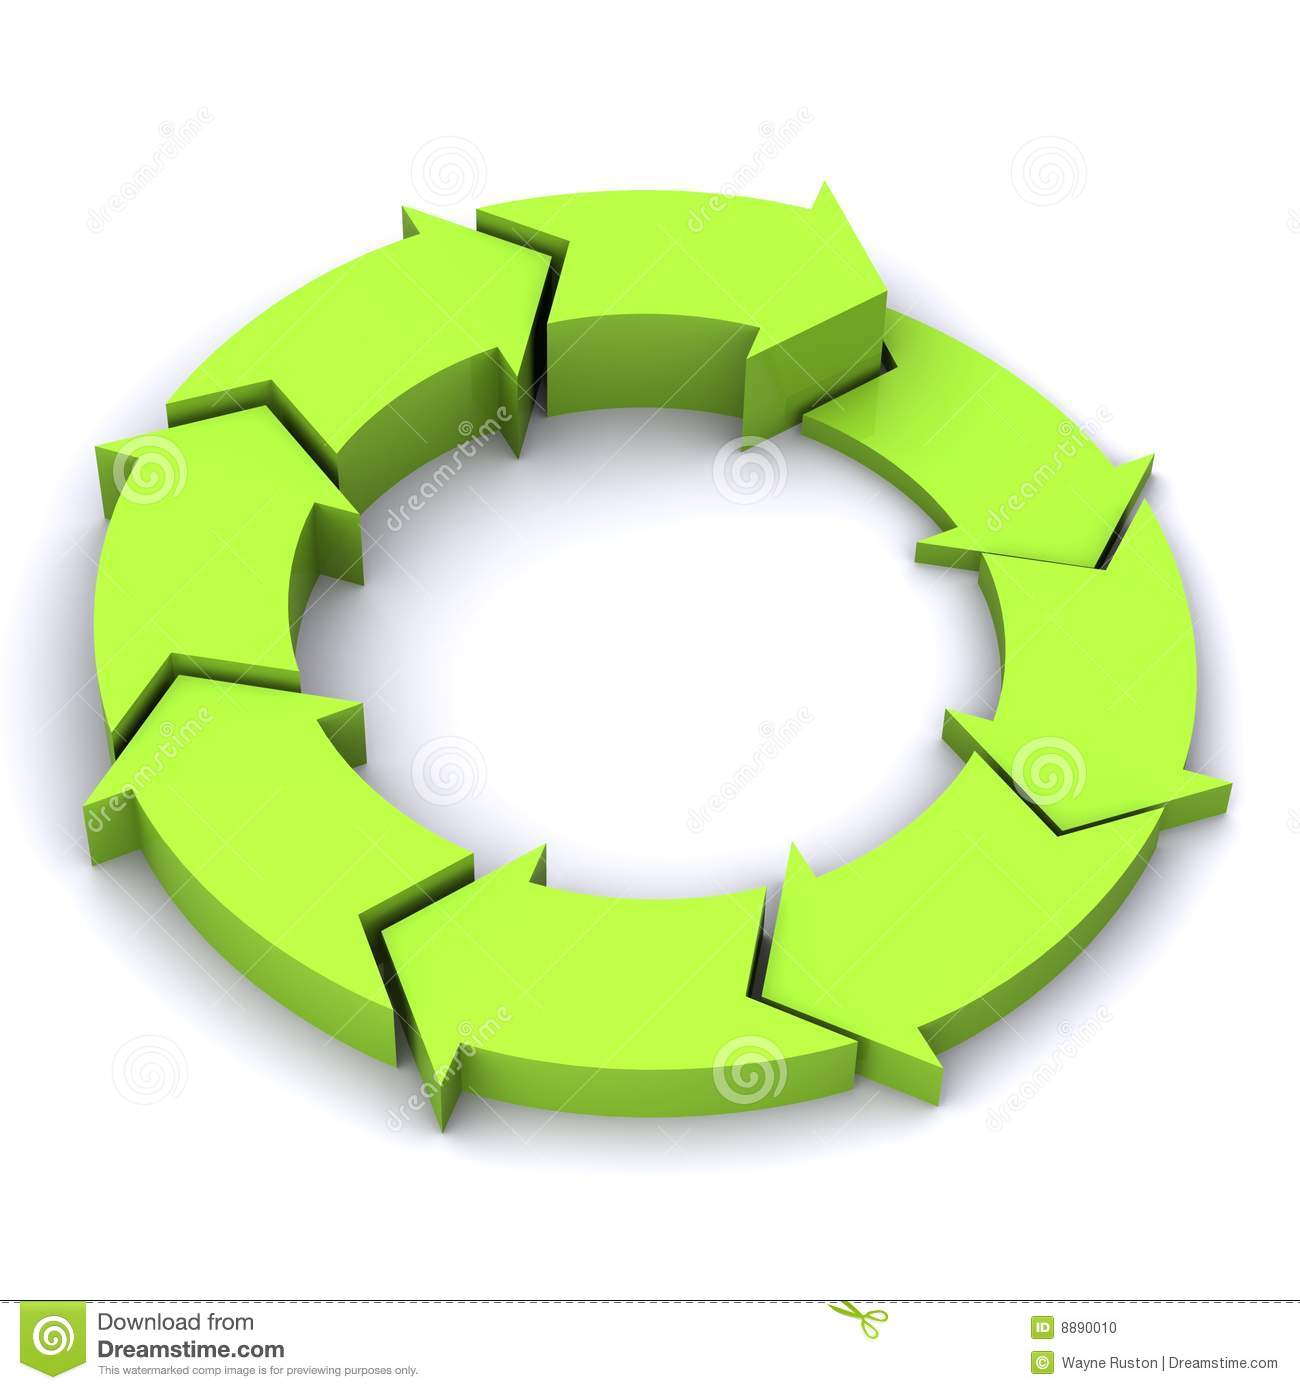 Circle Of Arrows Stock Photo - Image: 8890010: dreamstime.com/stock-photo-circle-arrows-image8890010